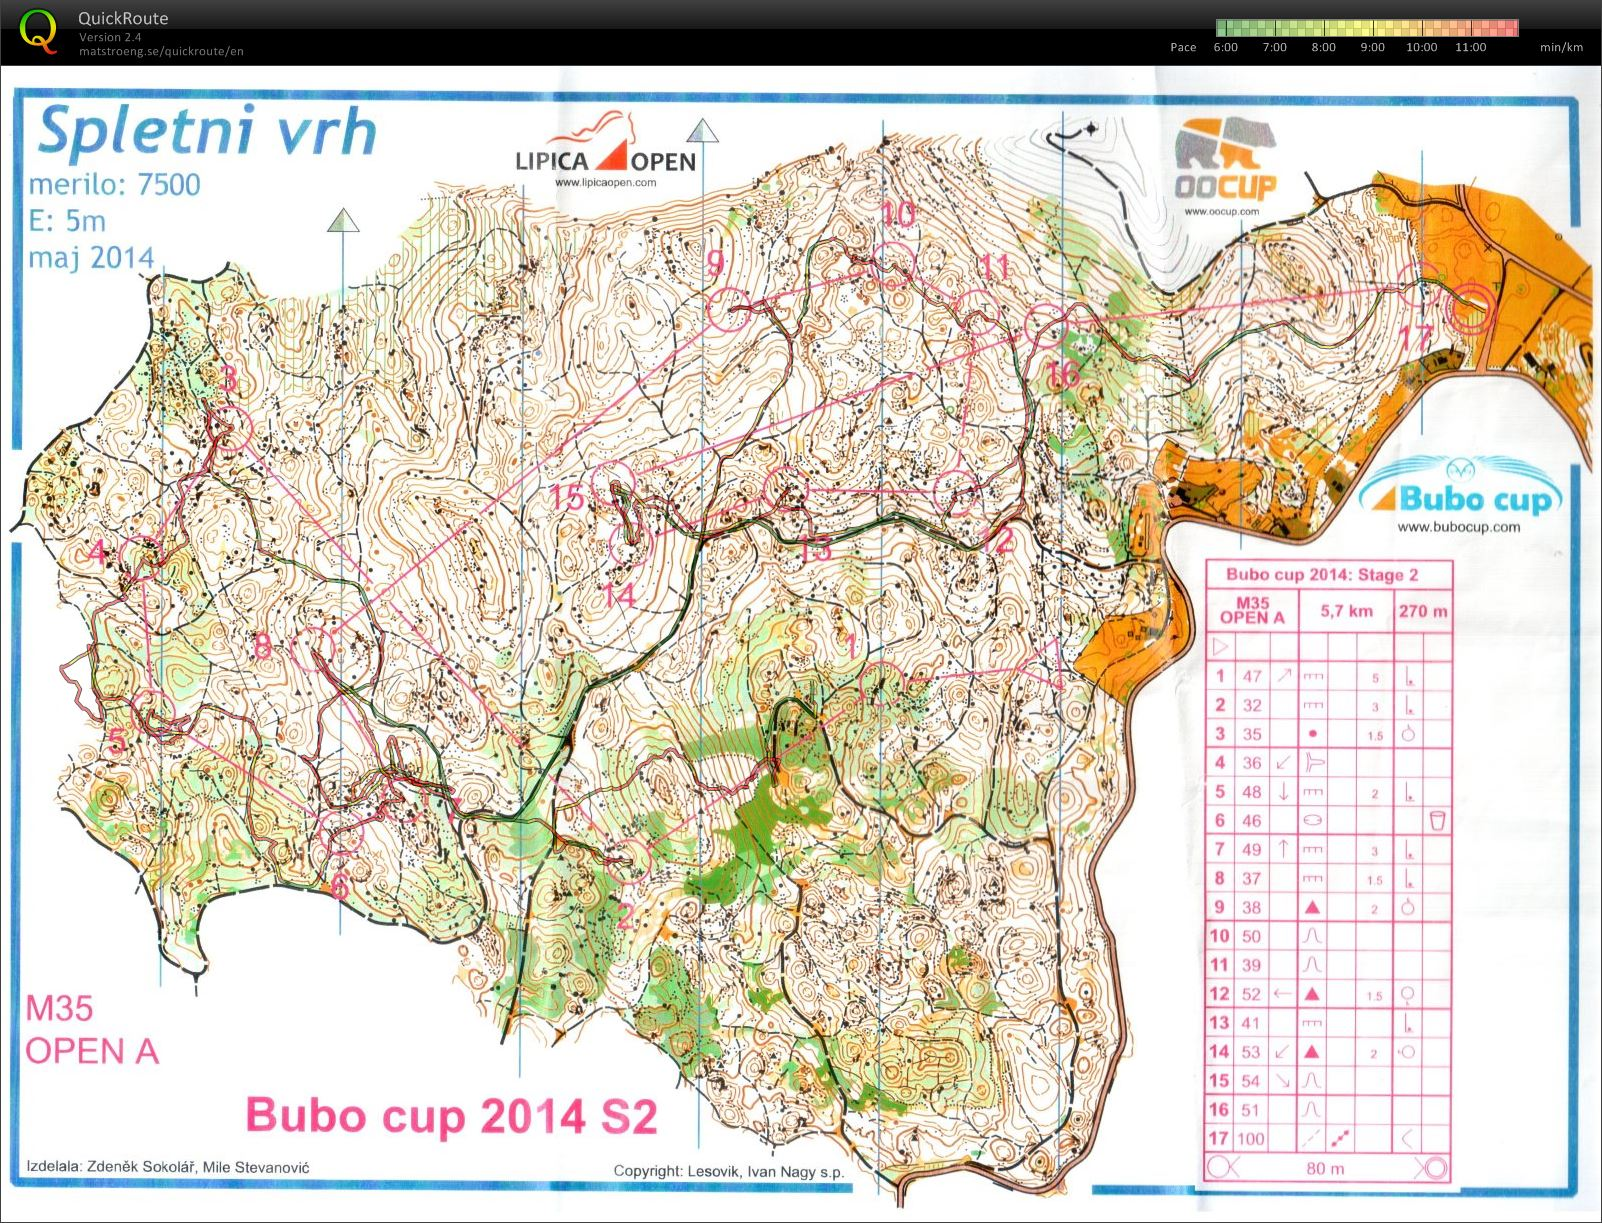 Bubo cup (stage 2) (25/07/2014)